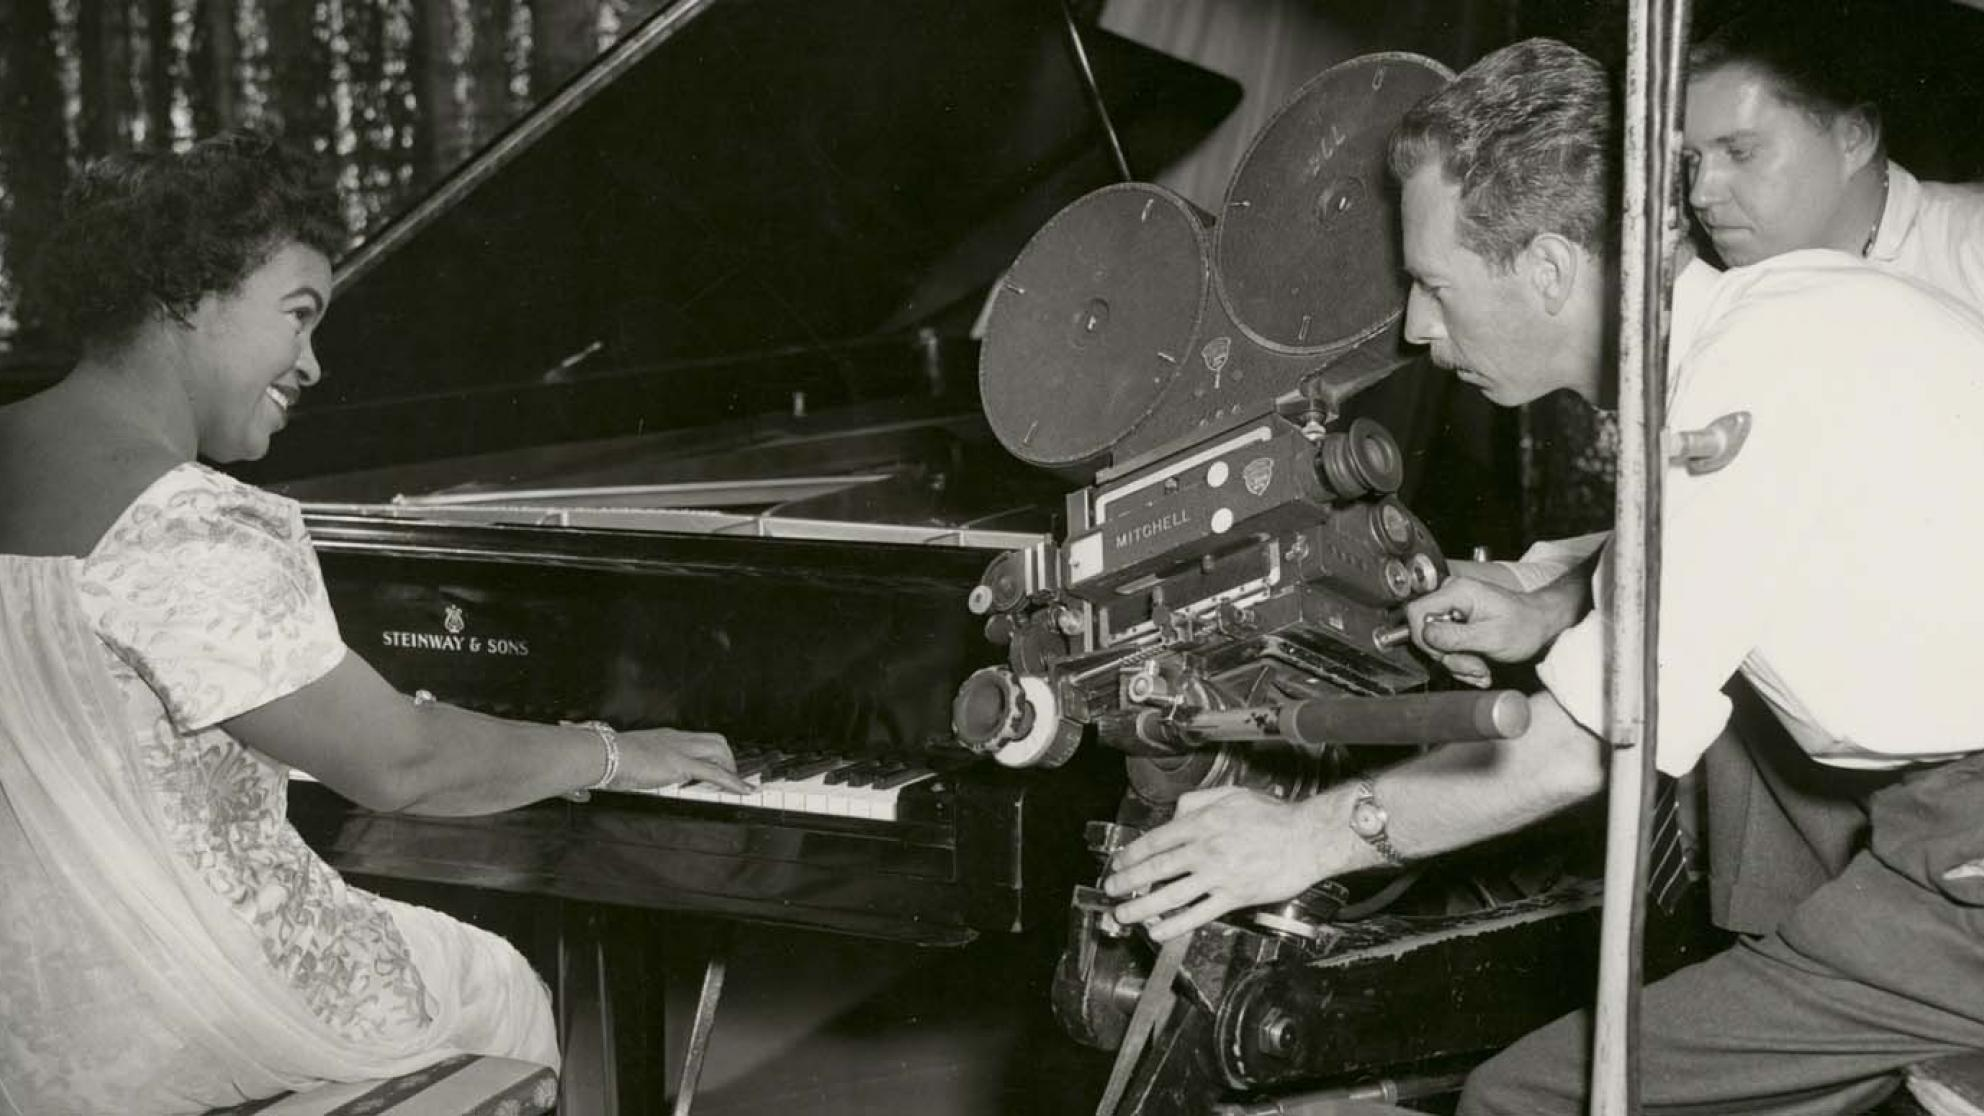 Winifred Atwell playing the piano and smiling while two men film her with a 35mm film camera next to the piano